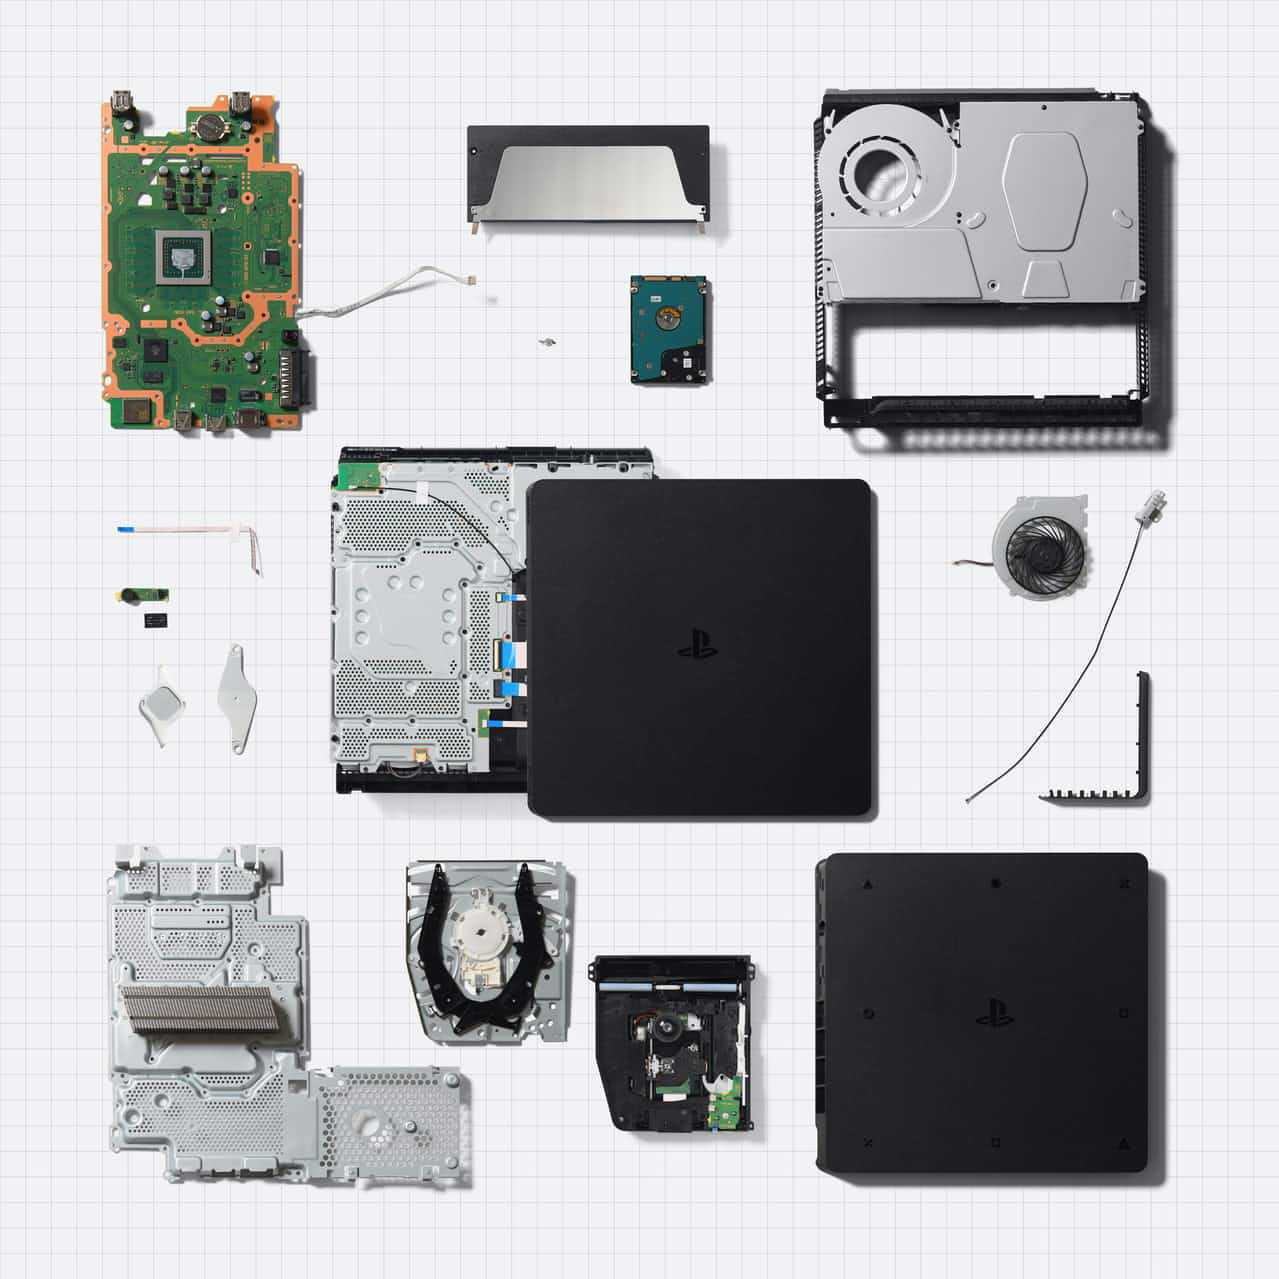 The innards of the PlayStation